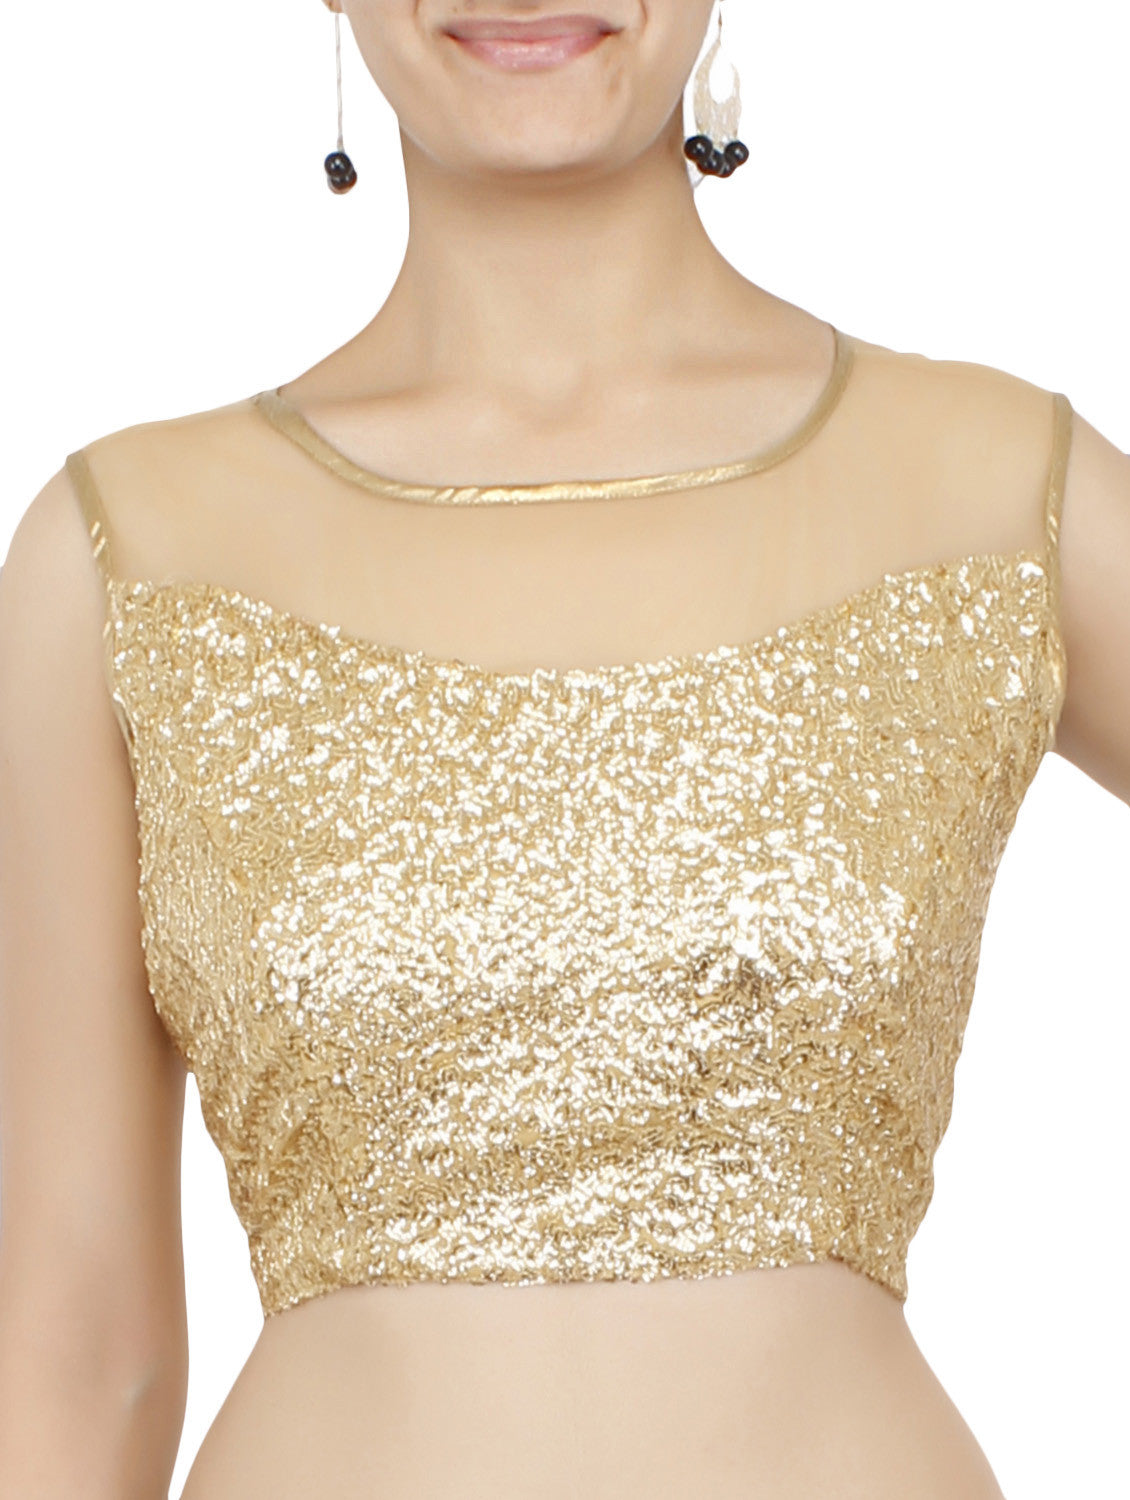 JKK Mart Golden Sequined Blouse JKKCBL80 , Saree Blouse - JKK Indian Arts, JKK Mart - 1